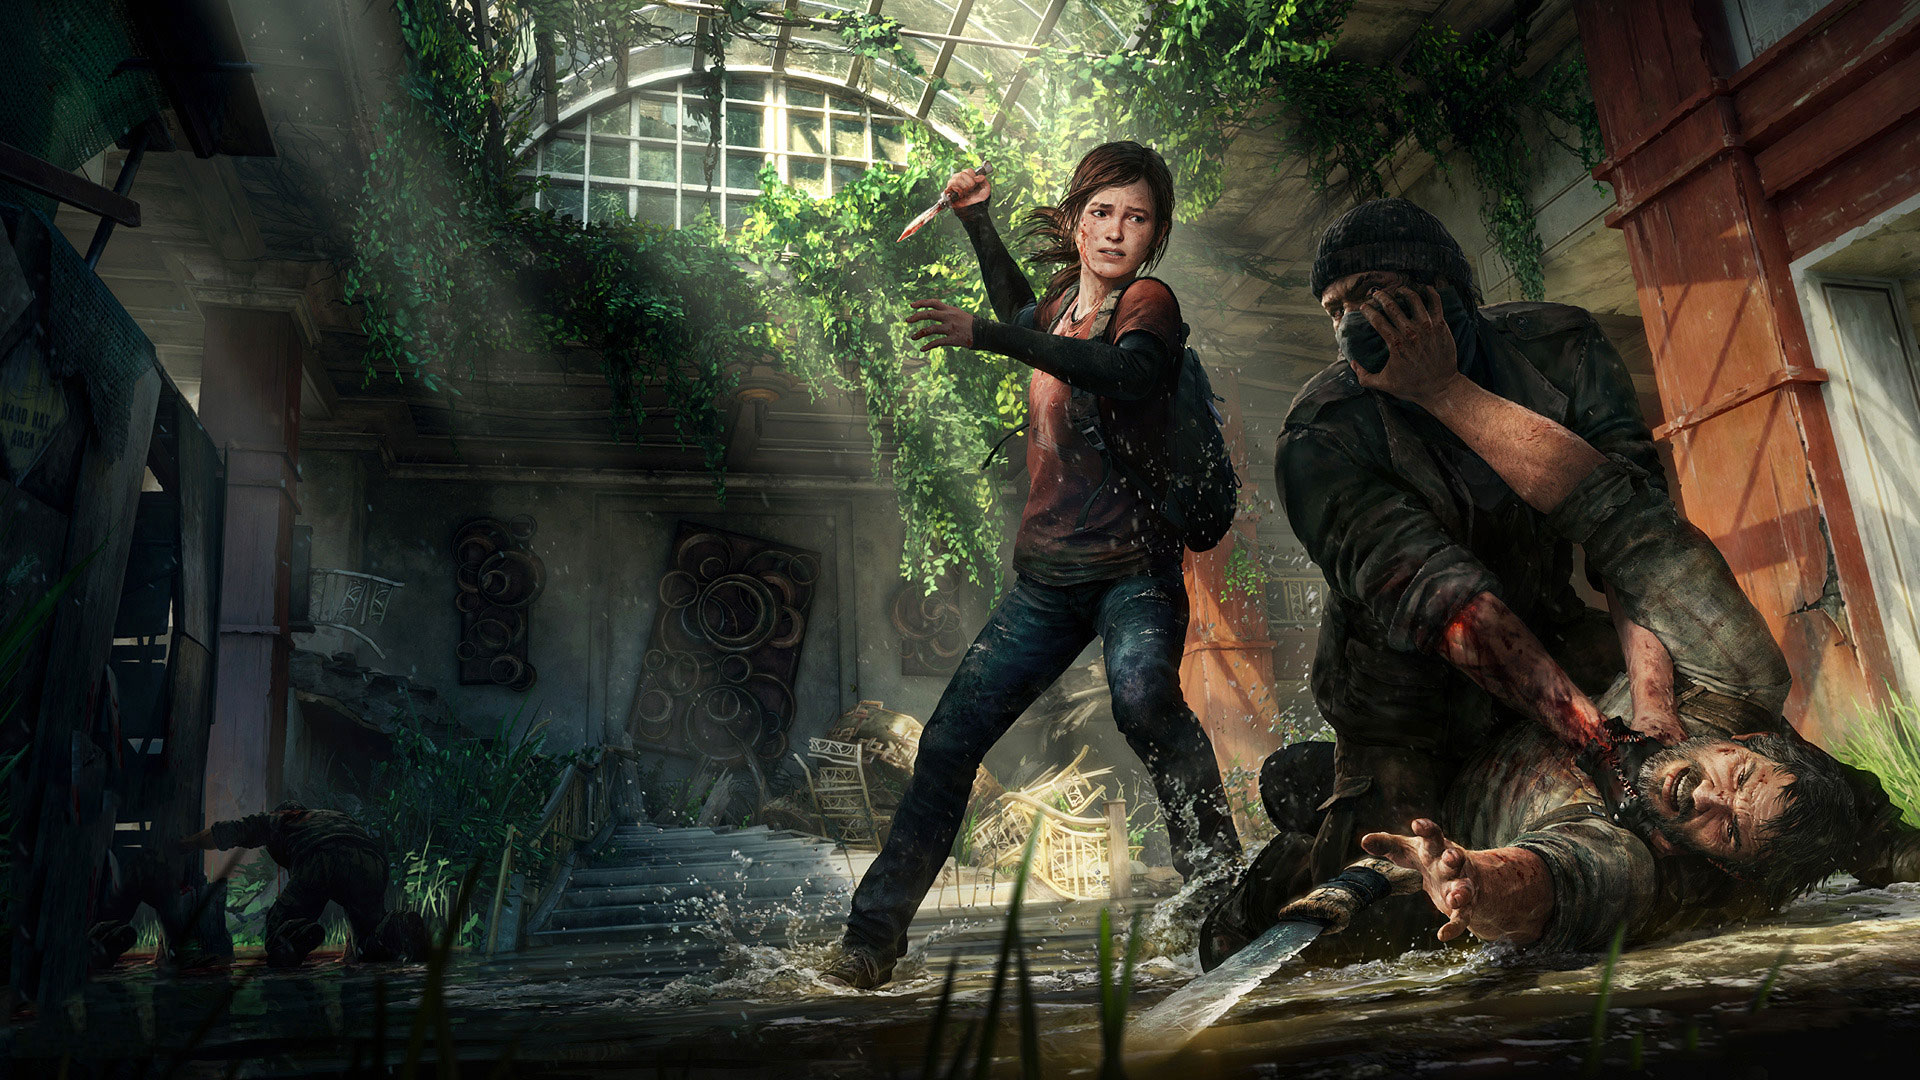 Naughty Dog Renames its Annual 'Outbreak Day' to 'Last of Us Day', and Promises 'Exciting Things' Are Planned For it